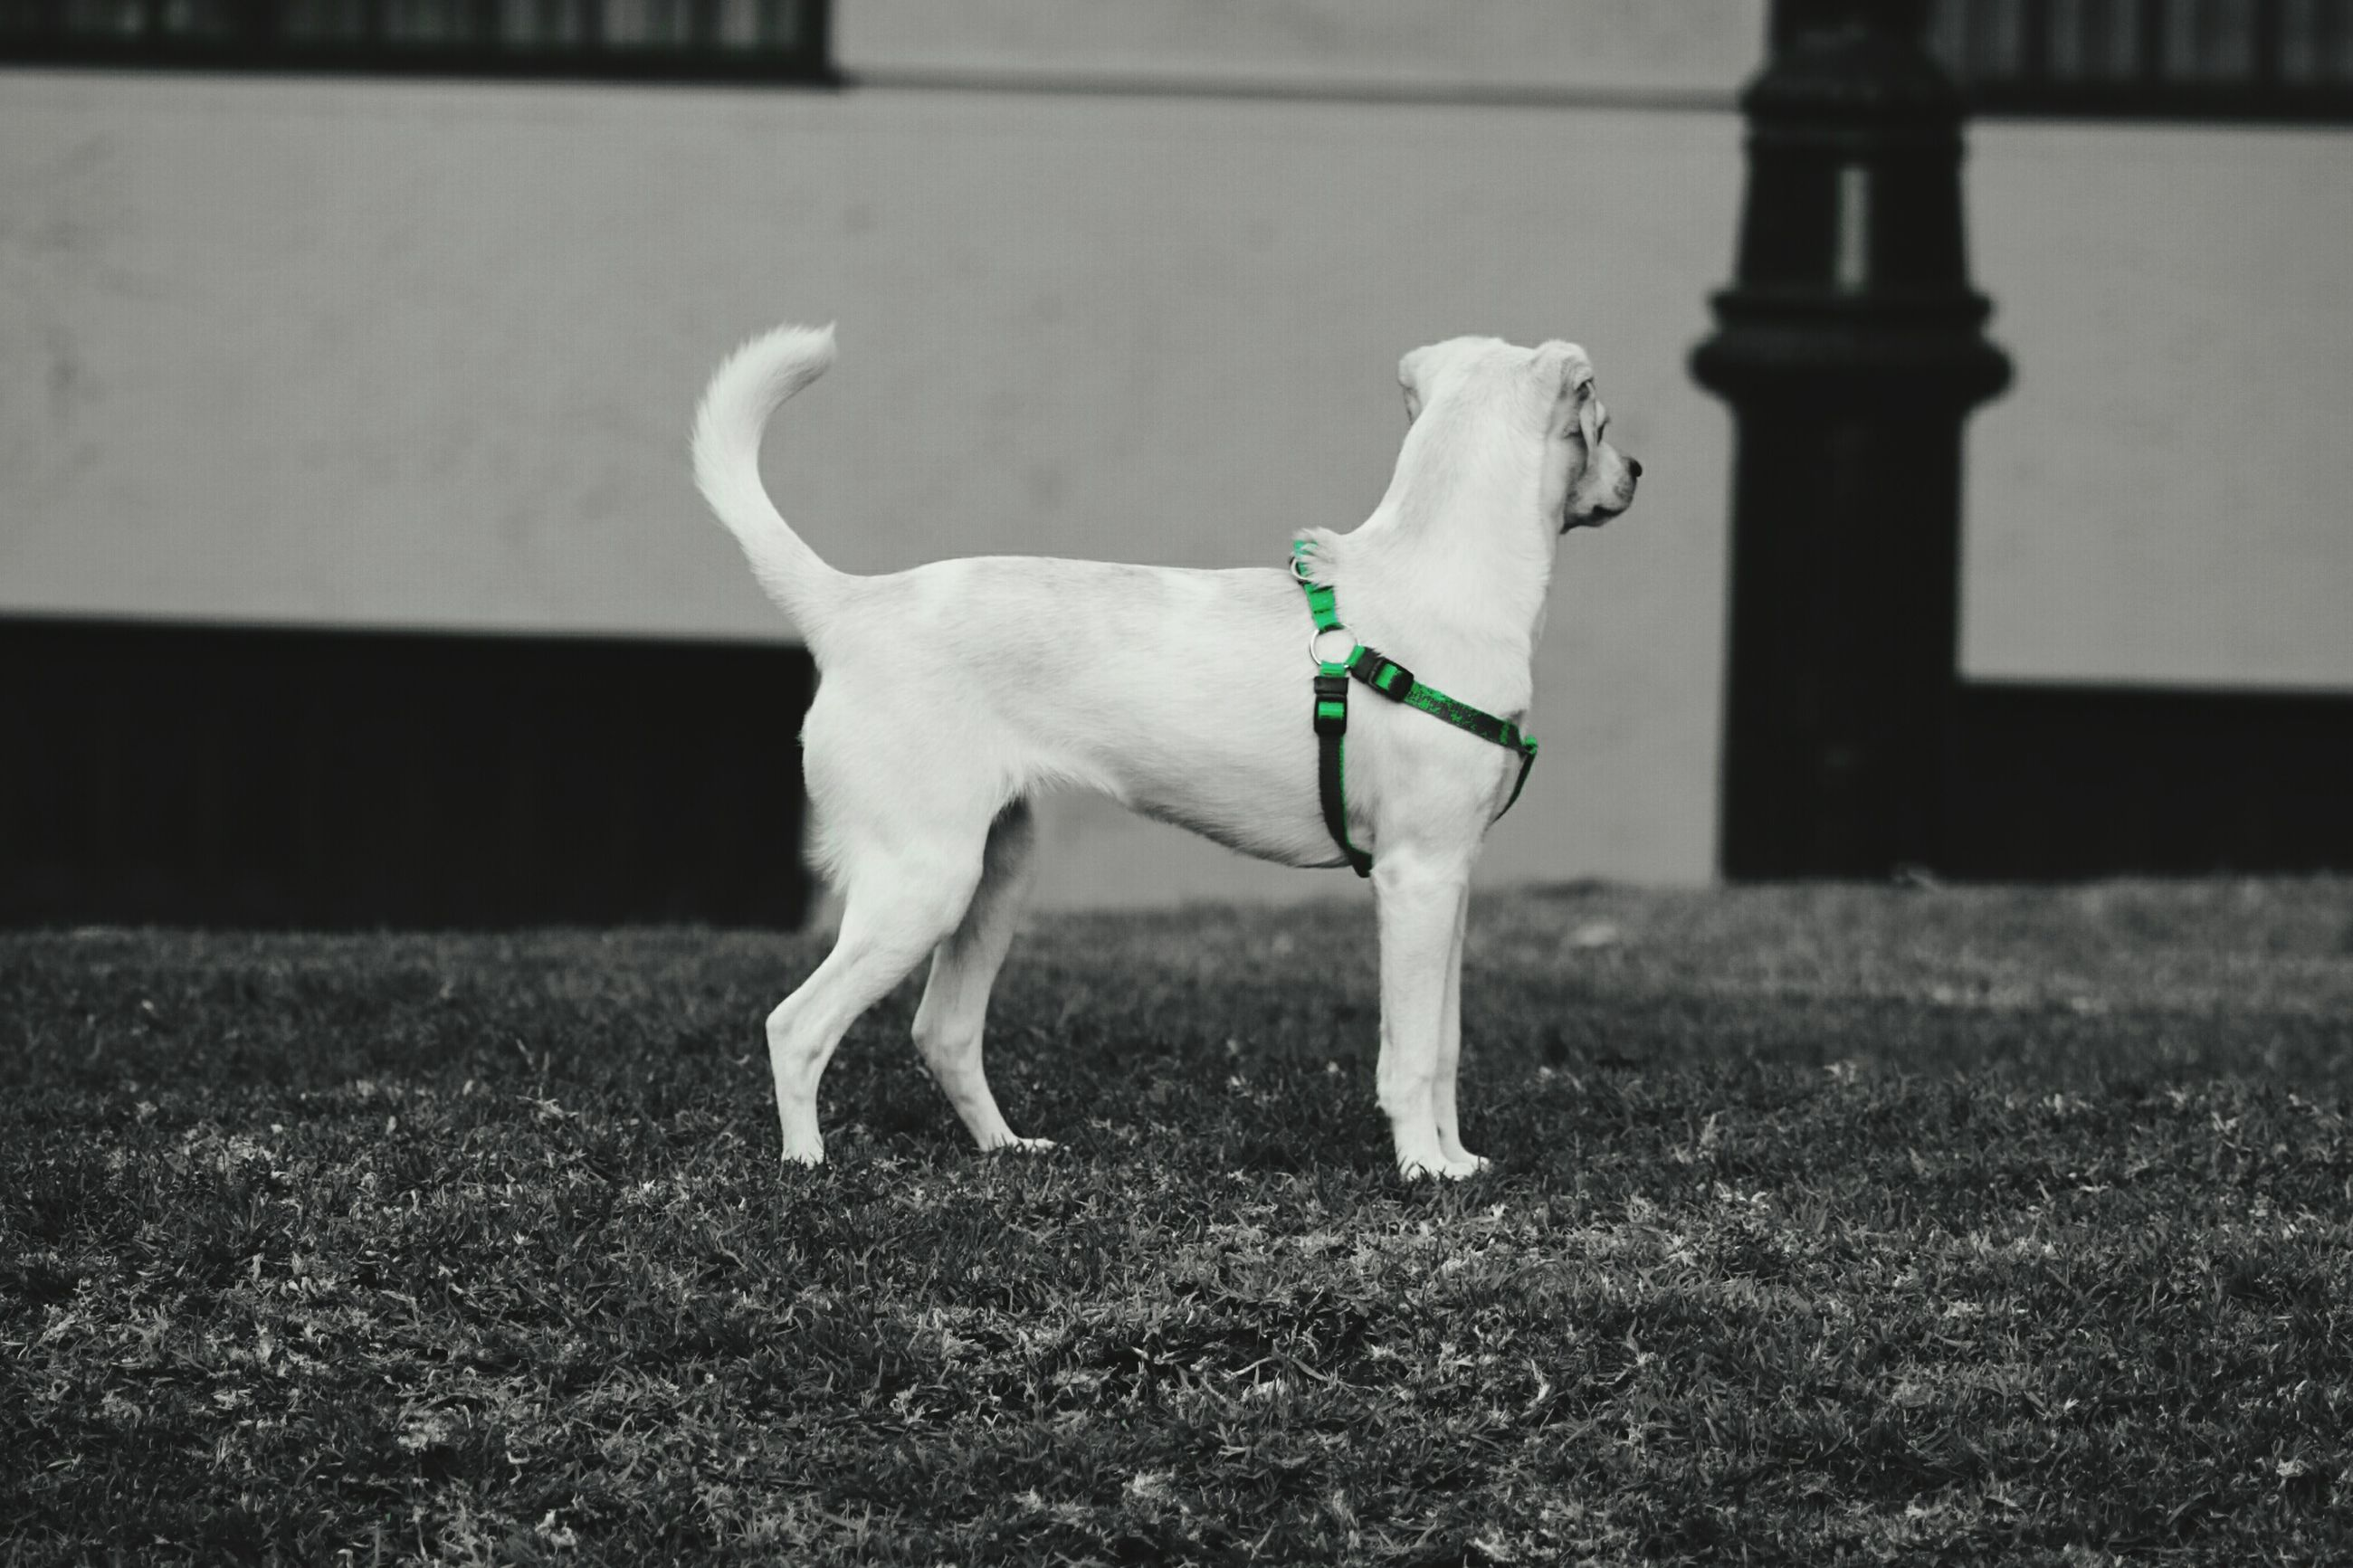 domestic animals, one animal, animal themes, dog, pets, full length, mammal, white color, grass, standing, field, focus on foreground, walking, day, side view, no people, outdoors, white, nature, front view